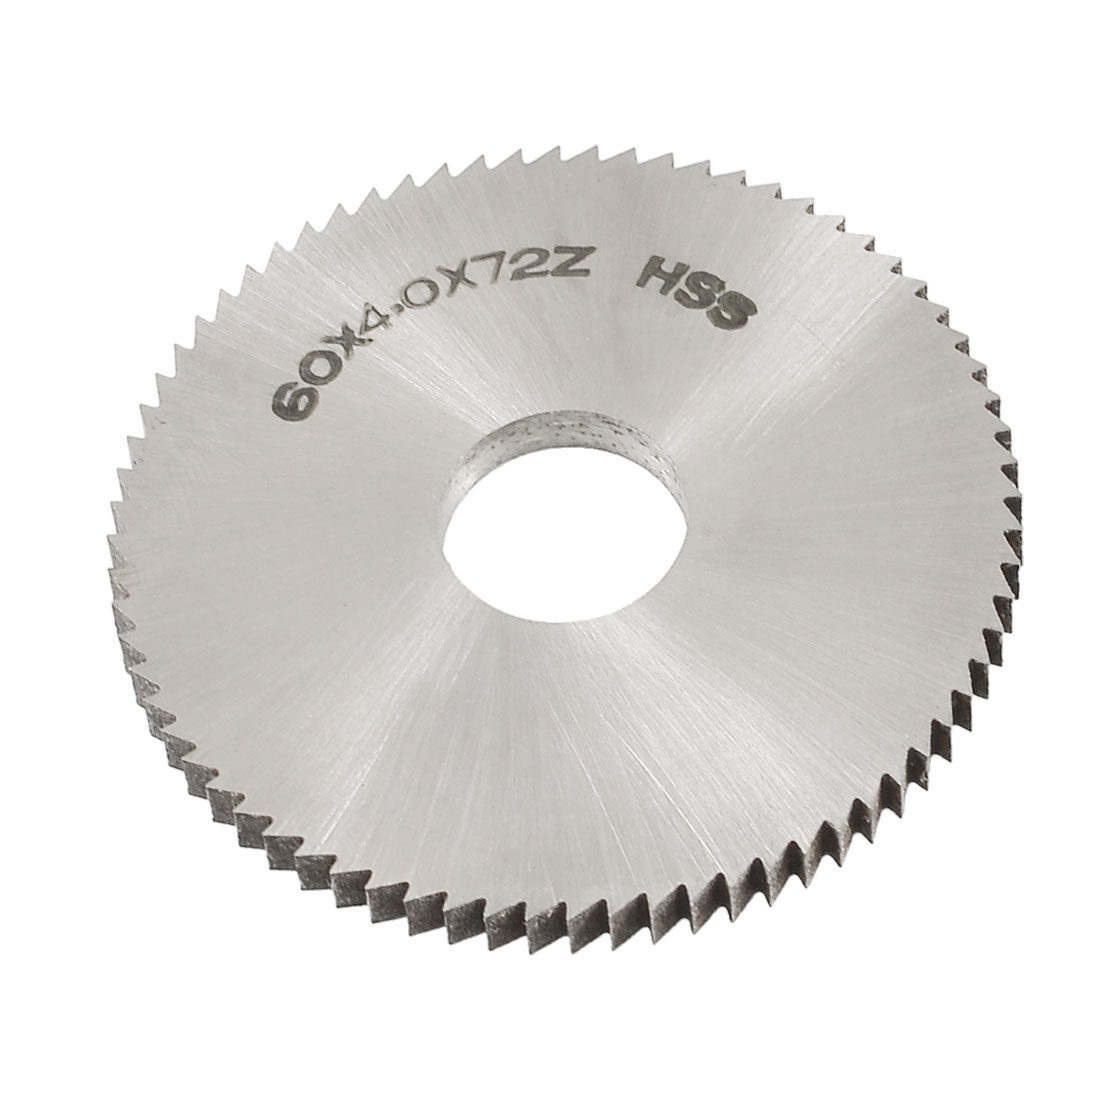 60mm OD 4mm Thickness 72T HSS Circular Slitting Saw